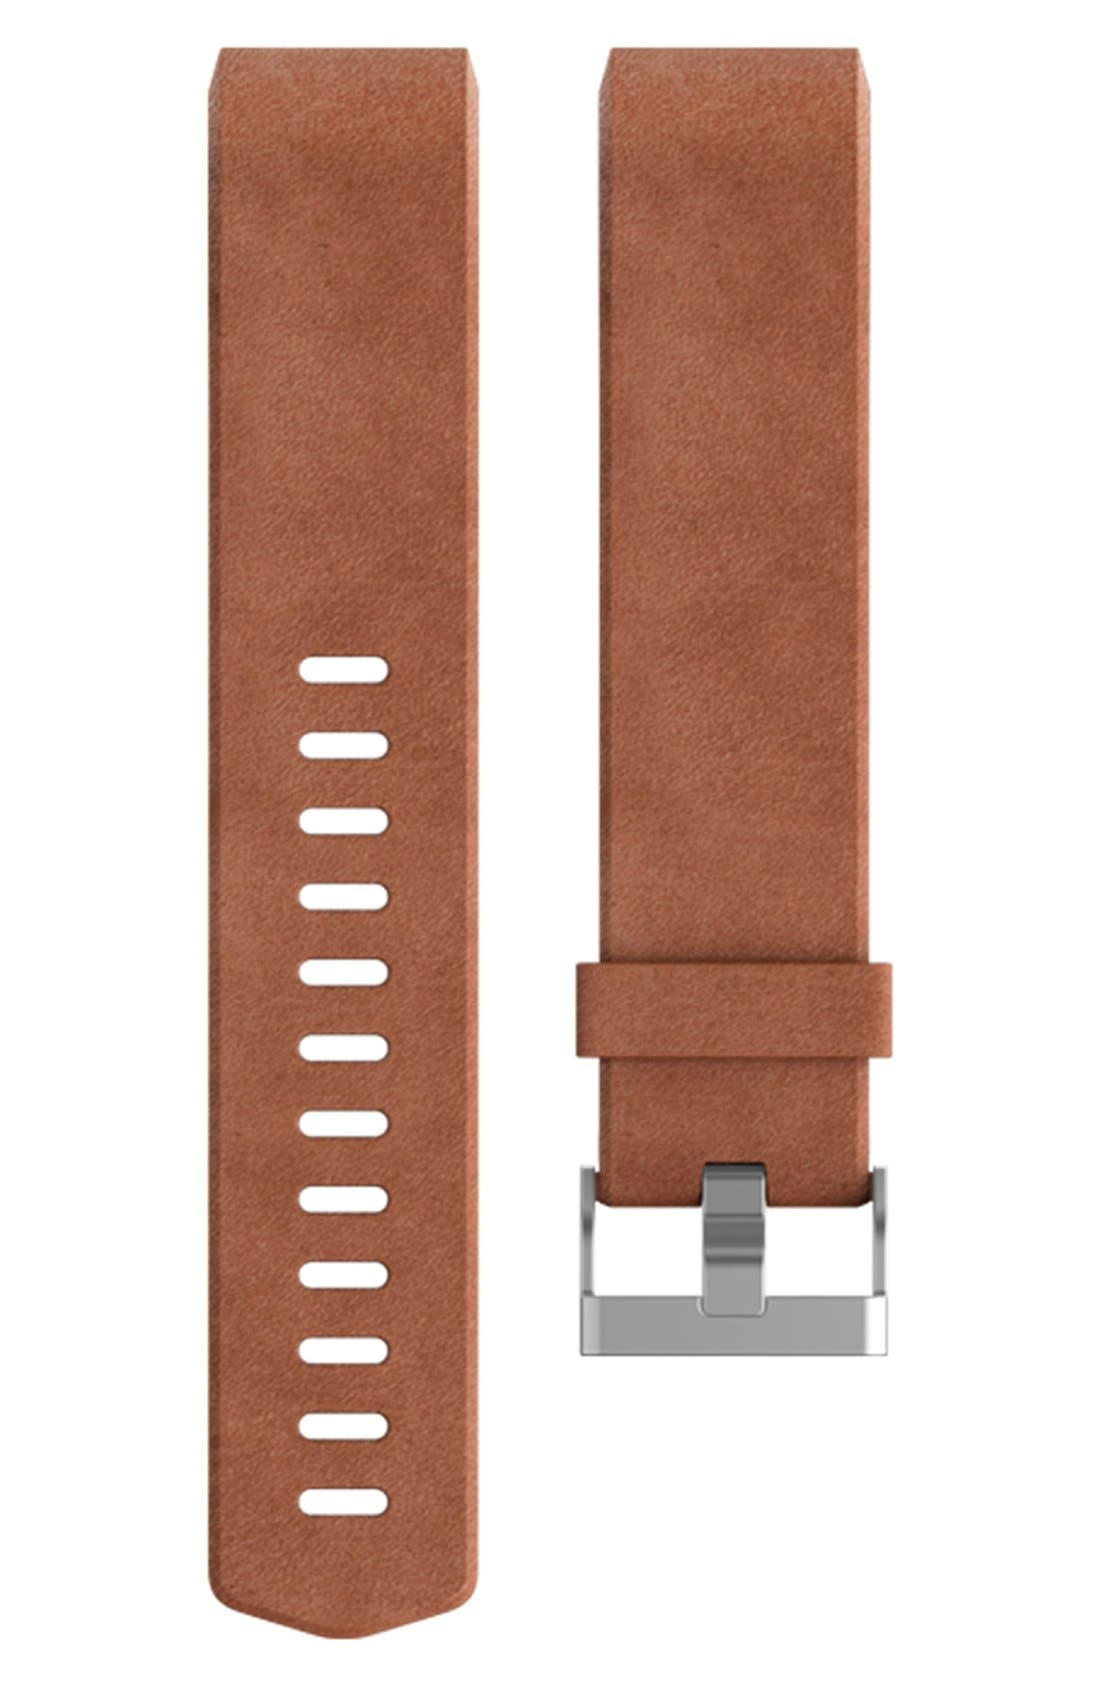 FITBIT,                             Charge 2 Leather Accessory Band,                             Main thumbnail 1, color,                             200